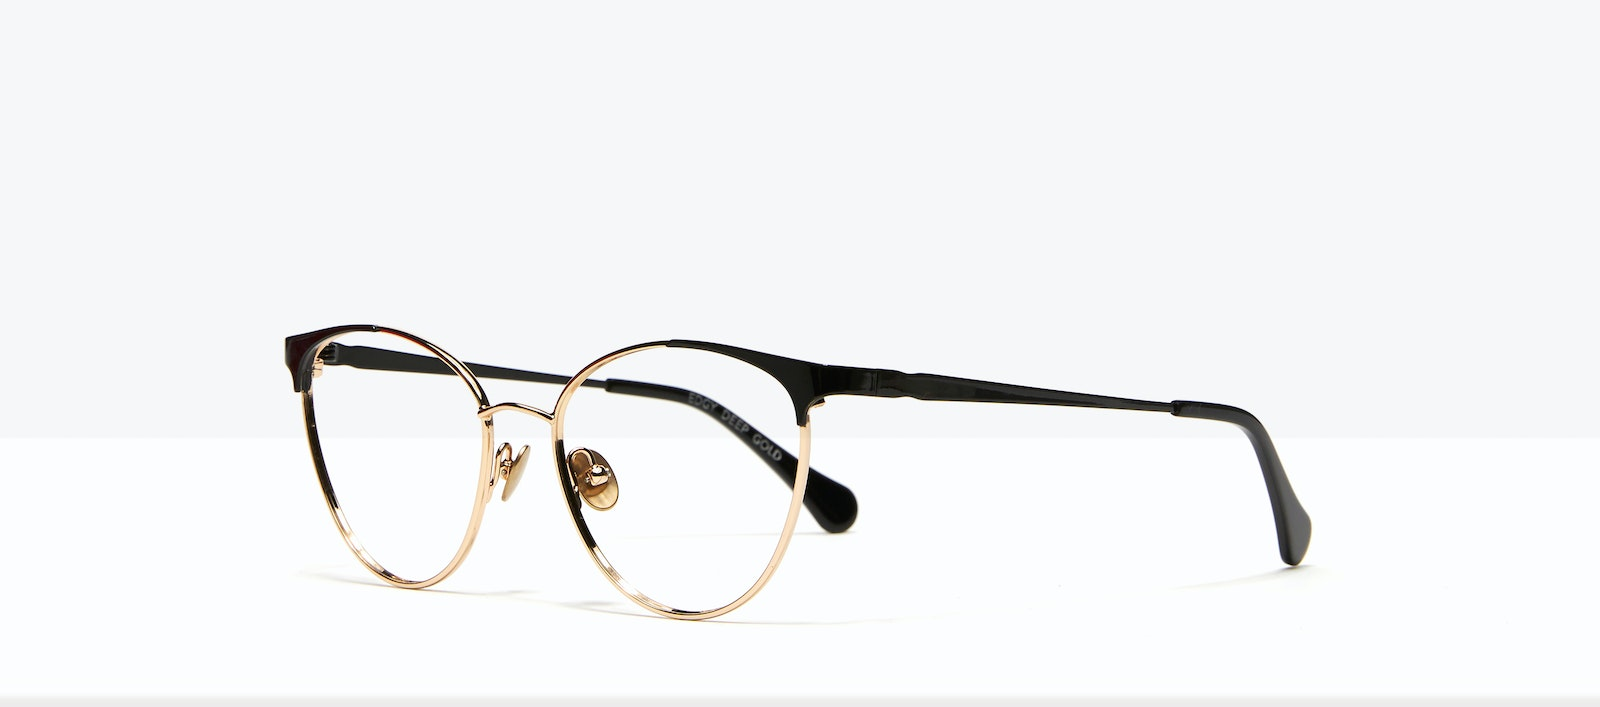 Affordable Fashion Glasses Cat Eye Eyeglasses Women Edgy Deep Gold Tilt